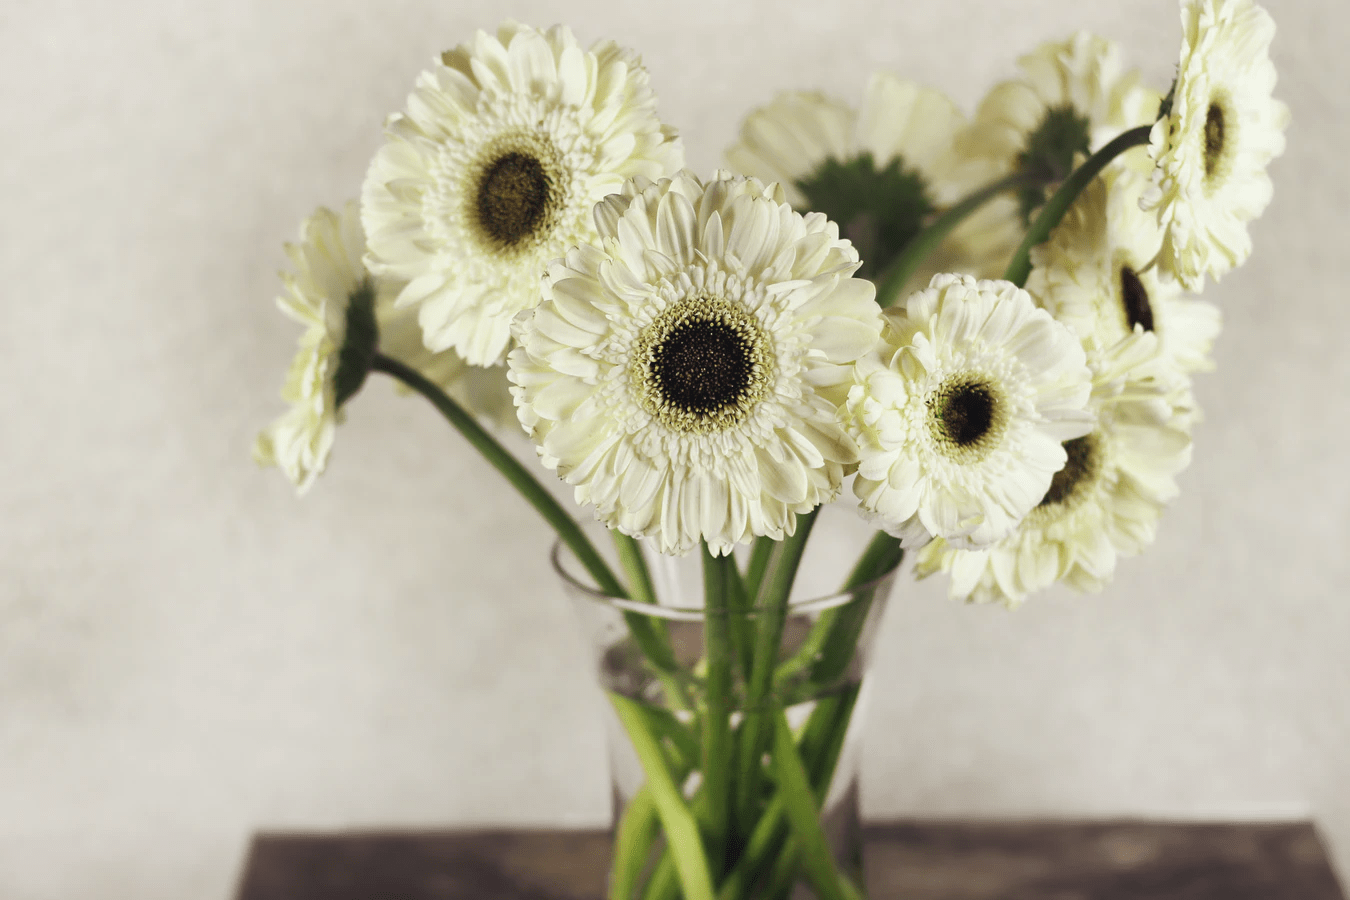 White gerbera daisies in a clear glass vase with water on a brown table indoors | Luxury Homes by Brittany Corporation